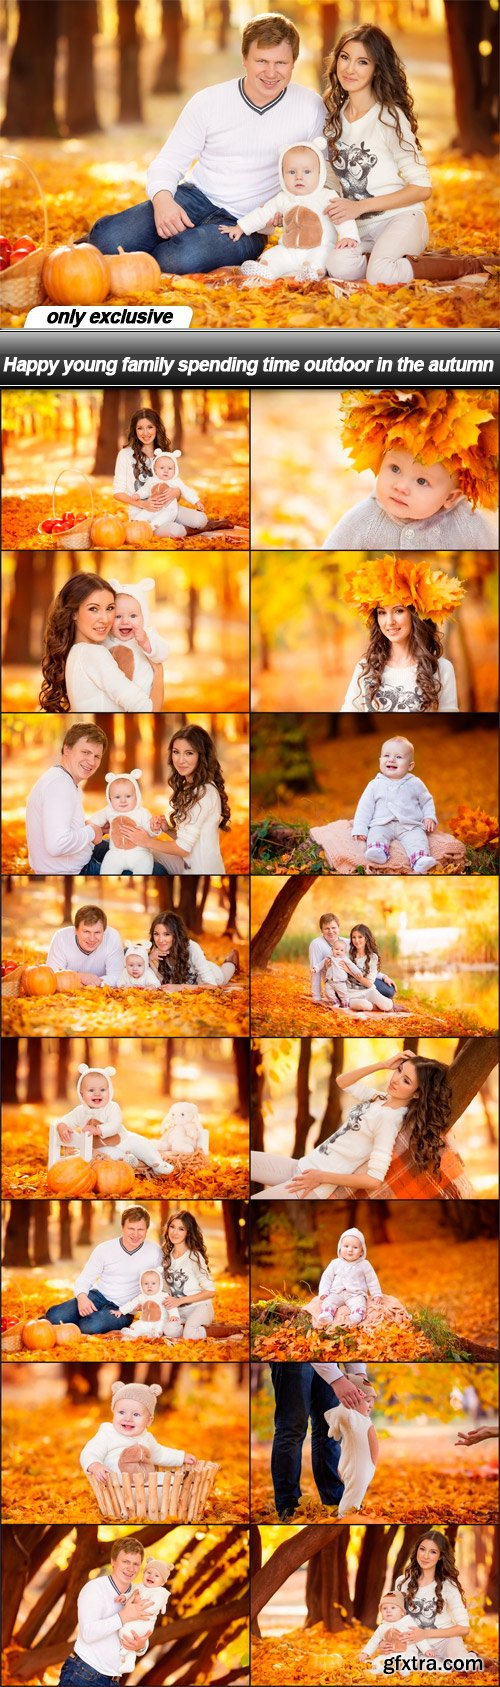 Happy young family spending time outdoor in the autumn - 16 UHQ JPEG